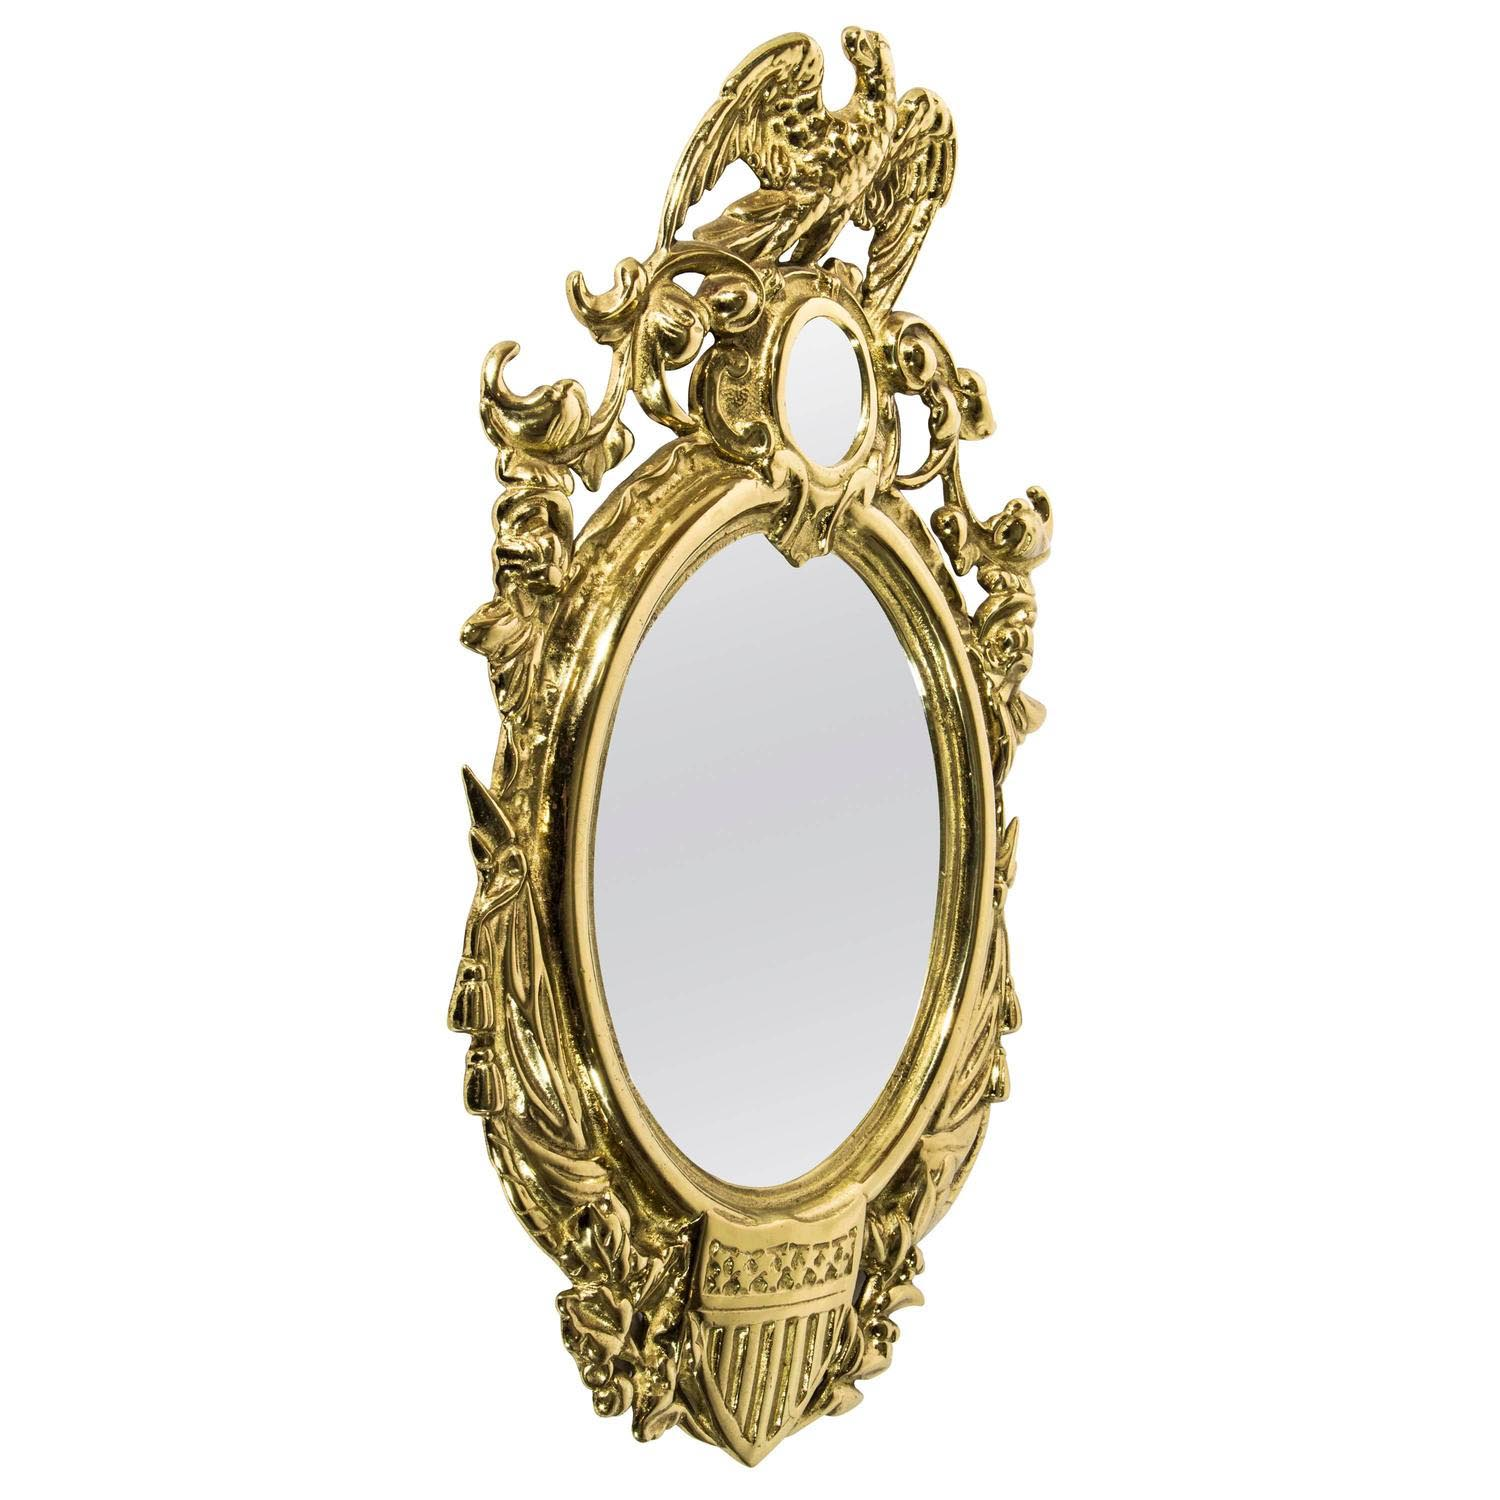 Antique brass wall mirrors best decor things for Antique wall mirrors